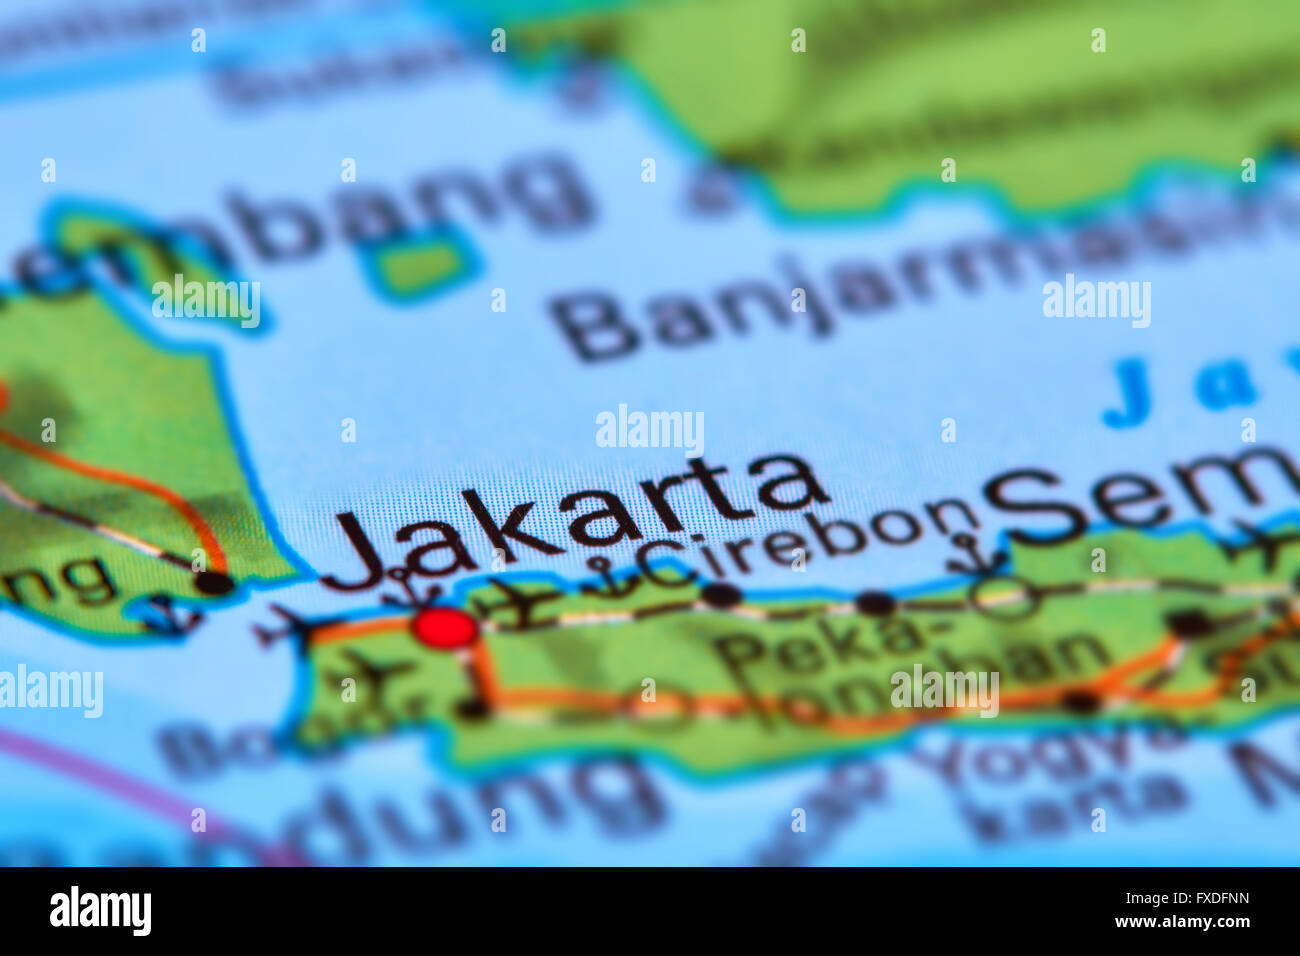 Jakarta capital city of indonesia on the world map stock photo jakarta capital city of indonesia on the world map gumiabroncs Images